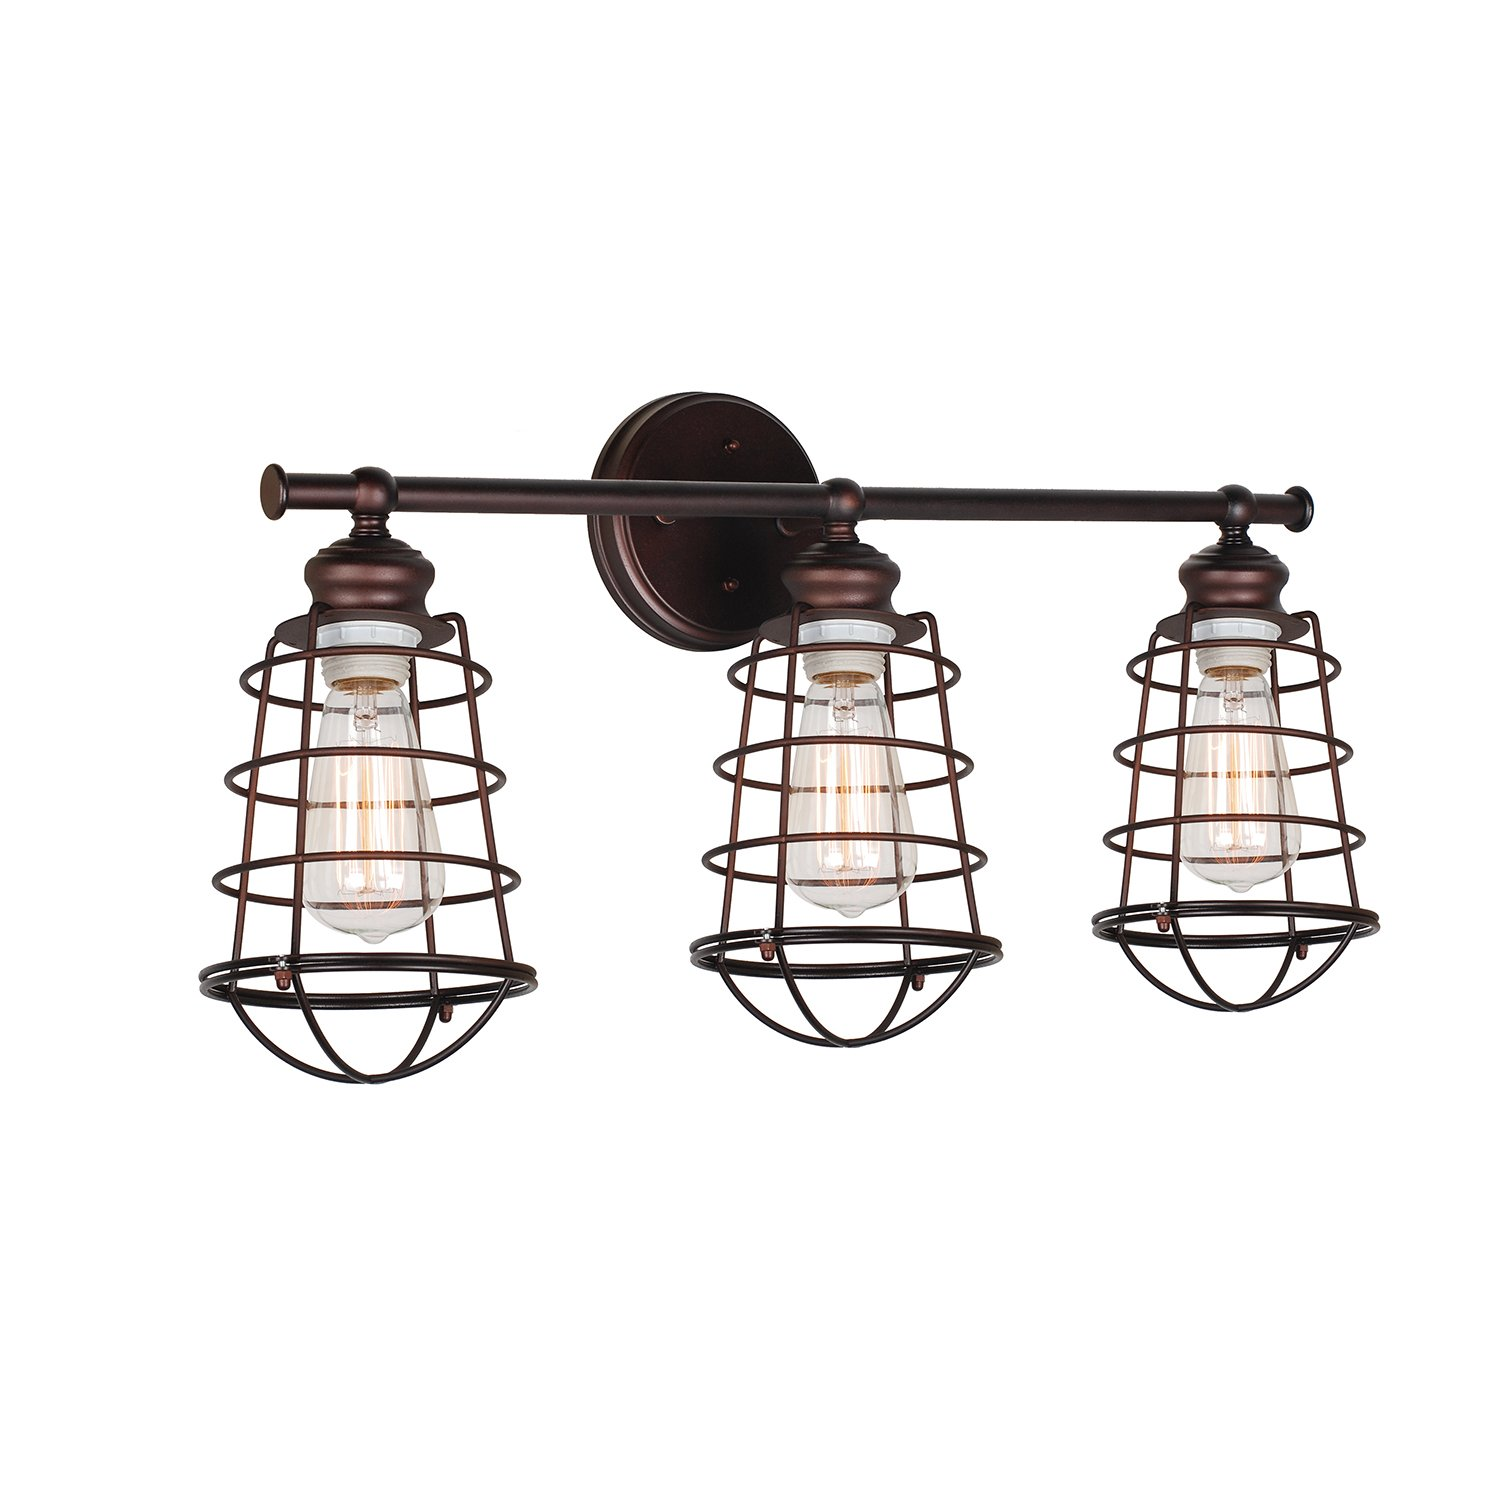 Amazon.com: Design House 519736 Ajax 3 Light Vanity Light, Bronze: Home  Improvement